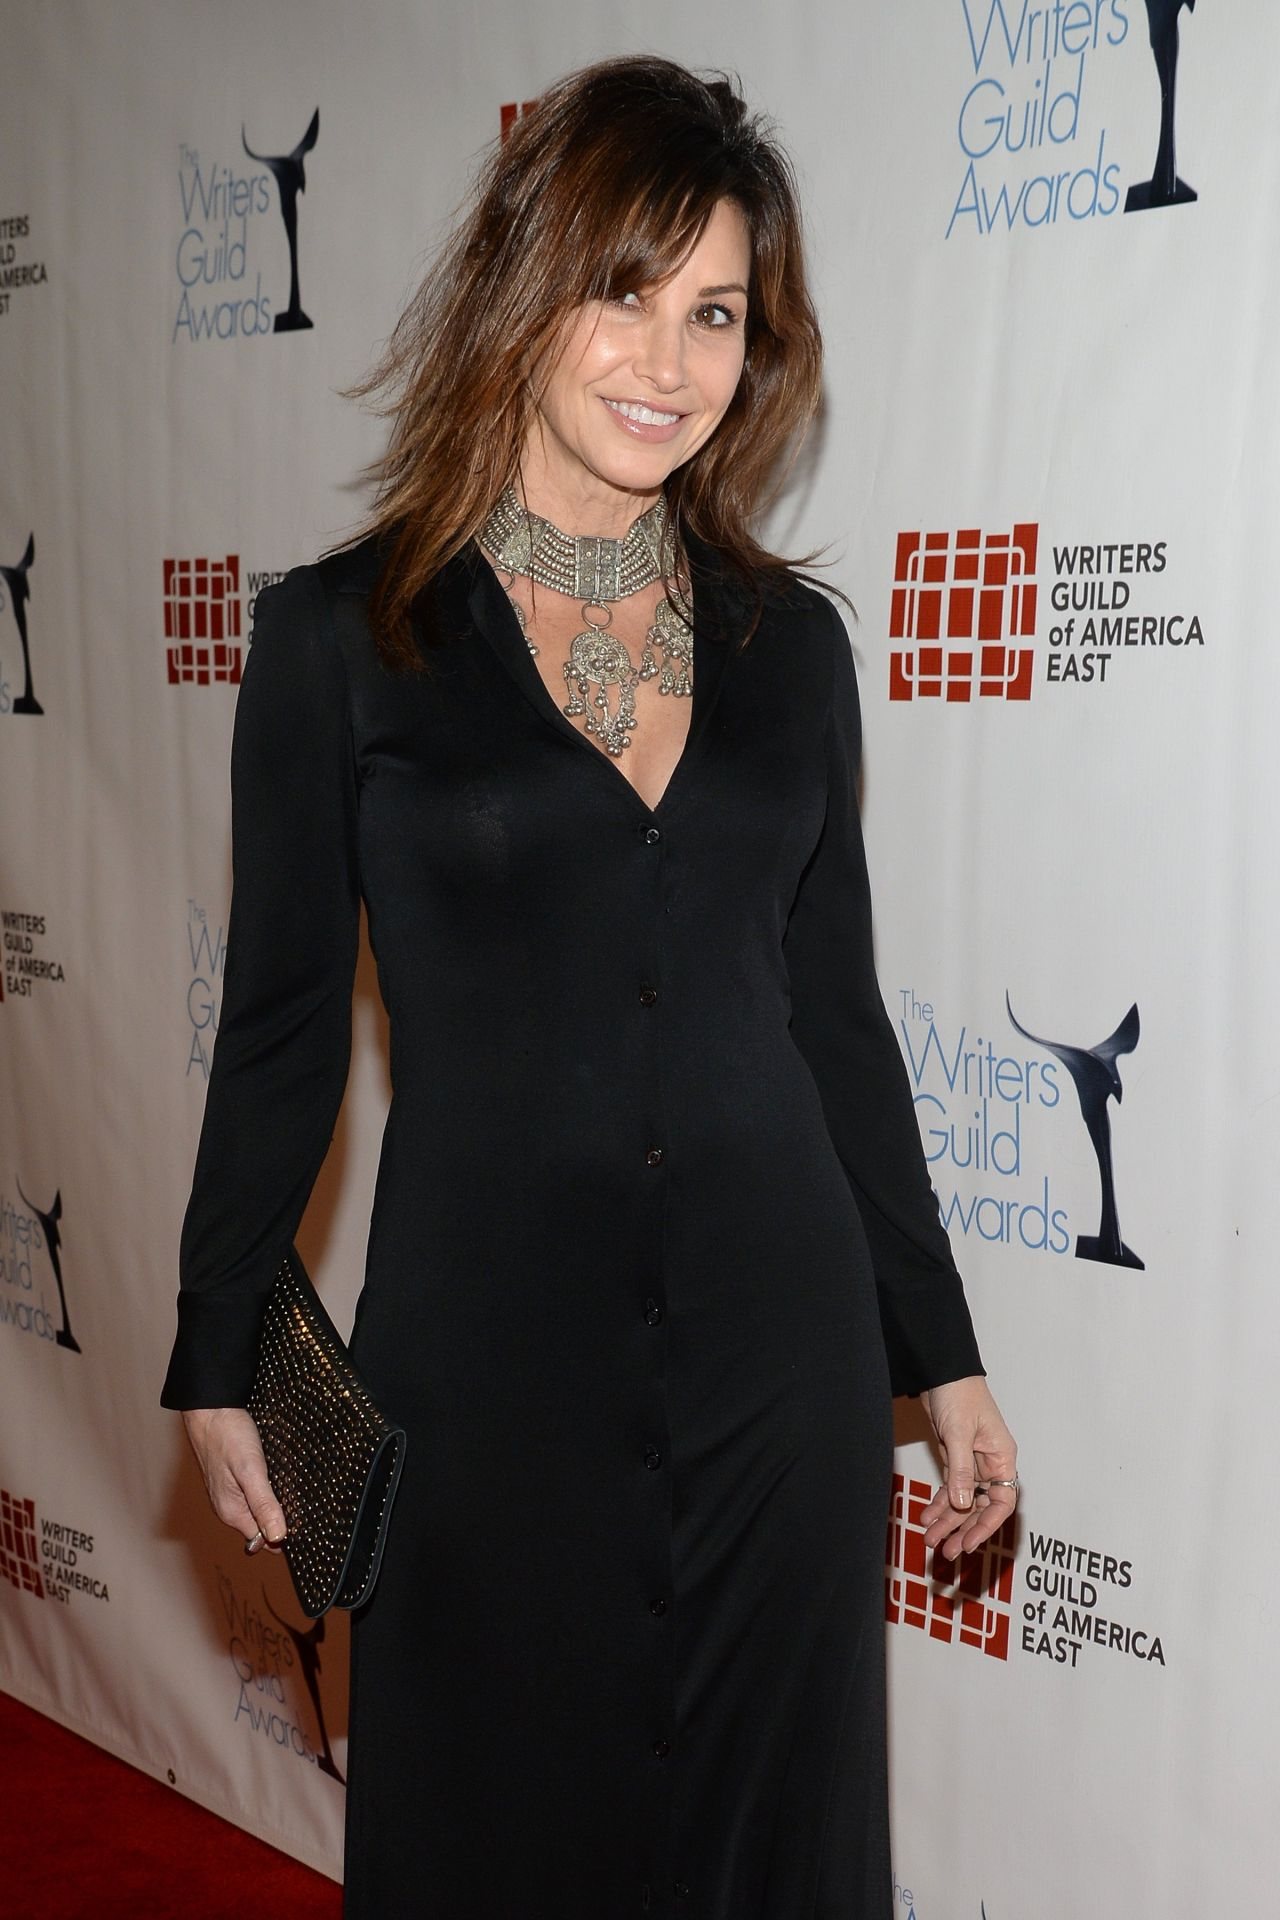 Gina Gershon - 2016 Writers Guild Awards in New York City